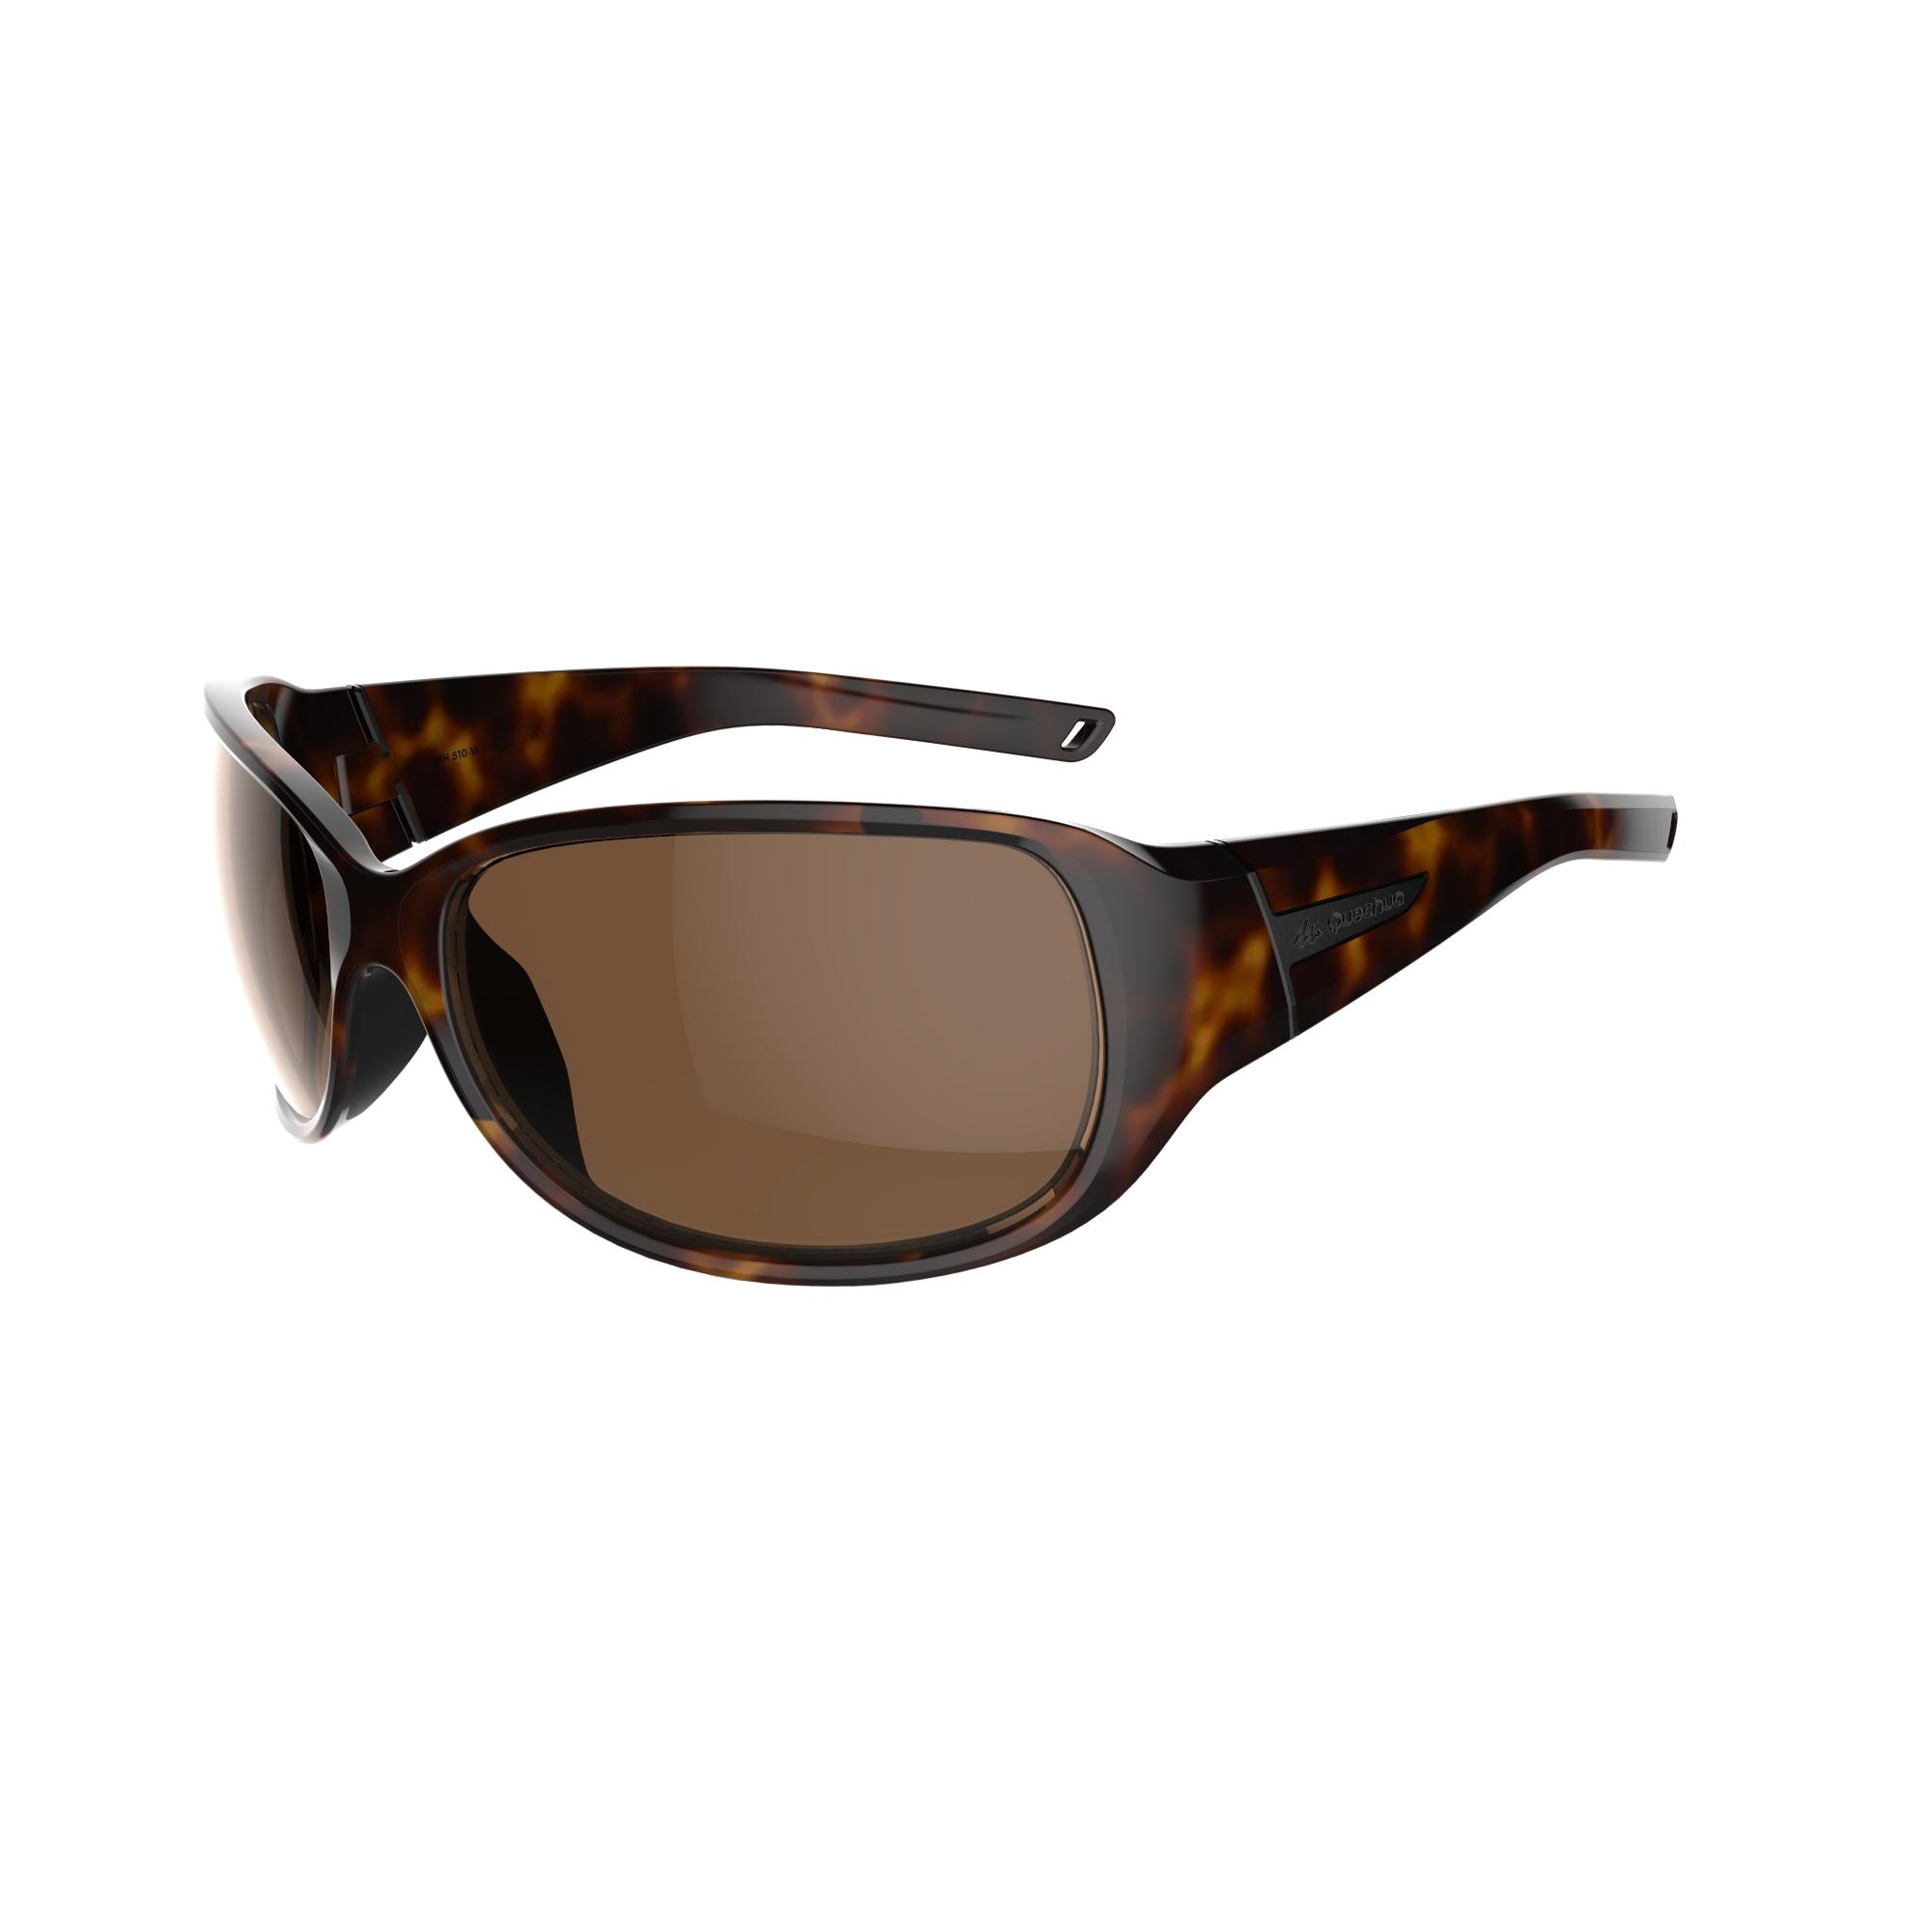 Hiking 500W Adult Hiking Sunglasses Category 3 - Brown Tortoise